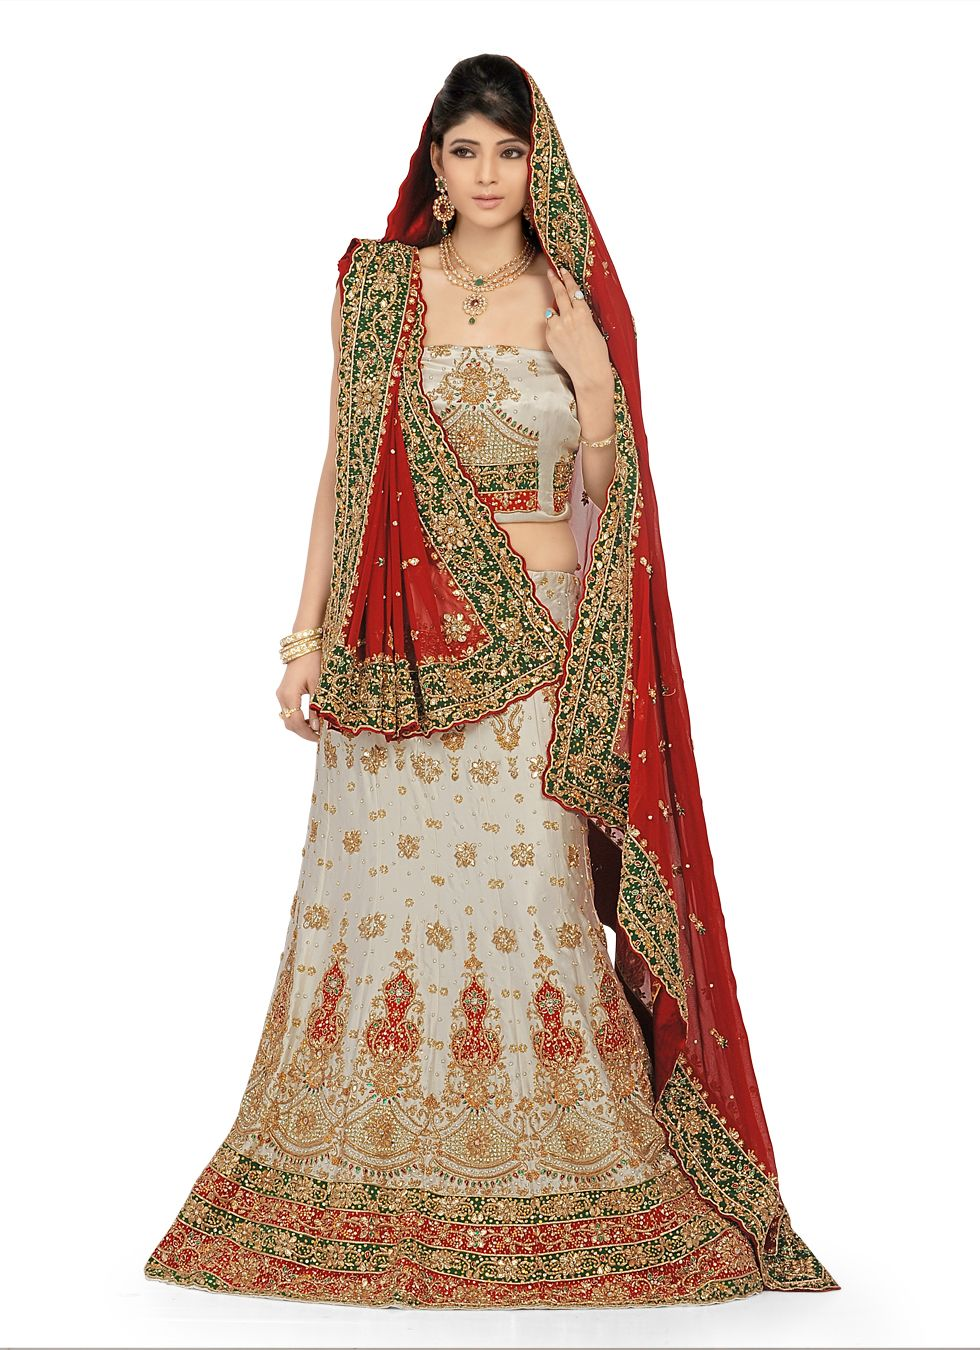 Indian bridal dresses in red and white striped